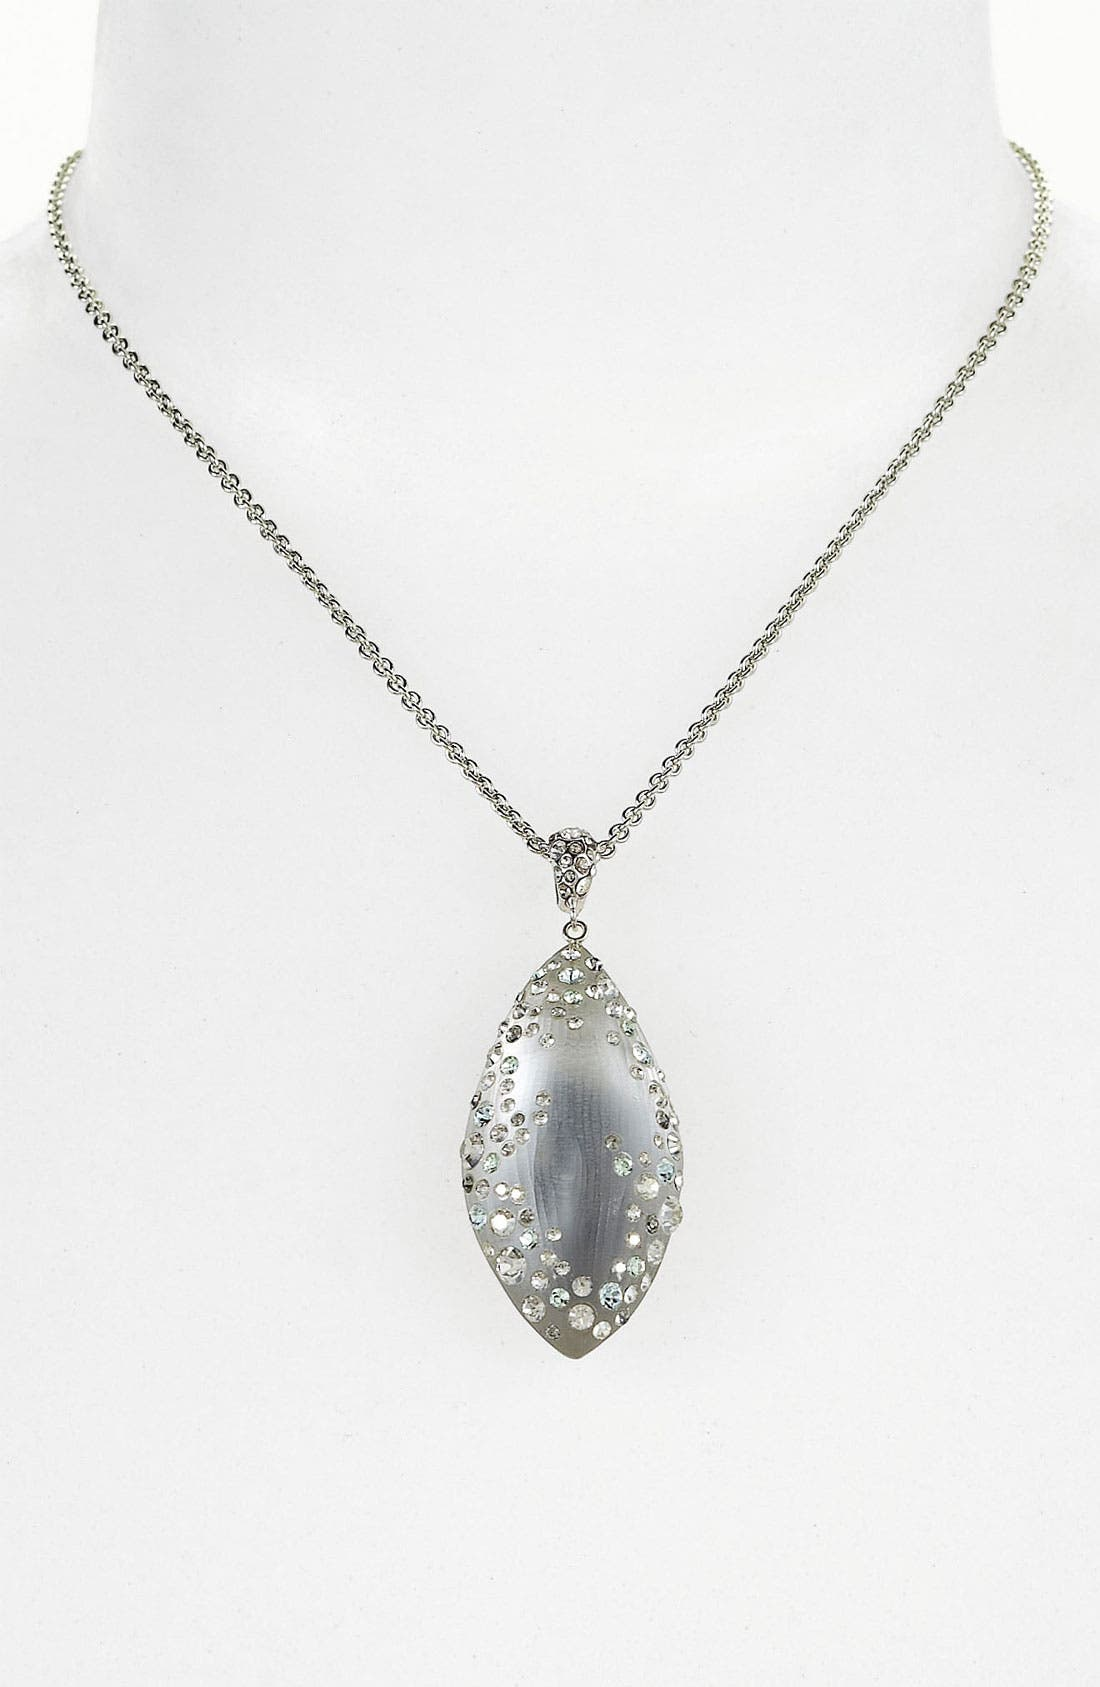 Alternate Image 1 Selected - Alexis Bittar 'Wanderlust Dust' Pendant Necklace (Nordstrom Exclusive)